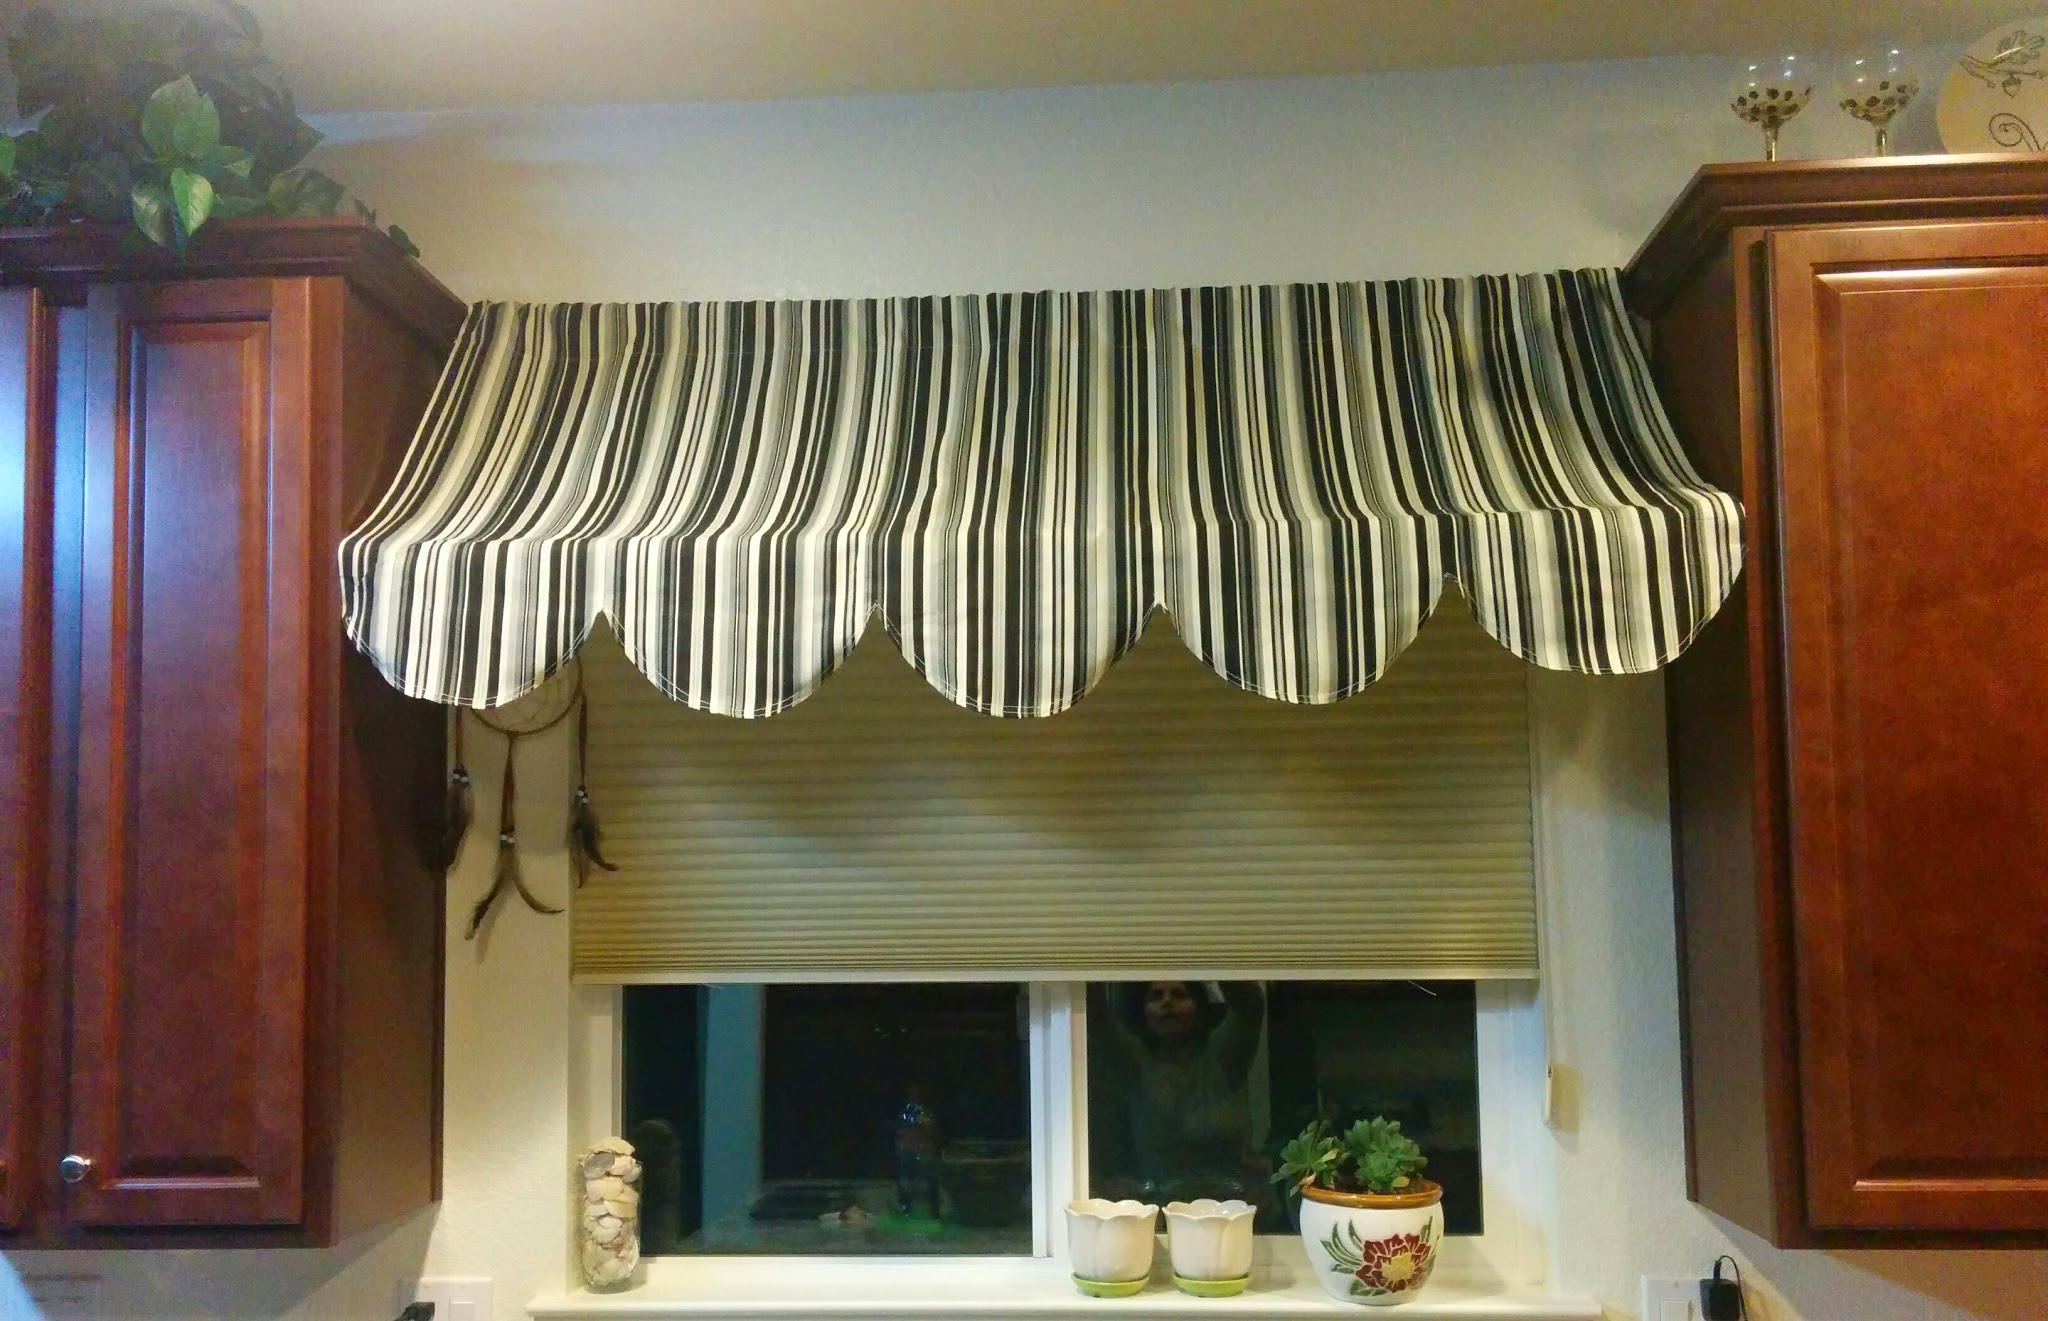 I Loved The Indoor Awning Idea And Knew Right Away That Wanted One For My Kitchen Window